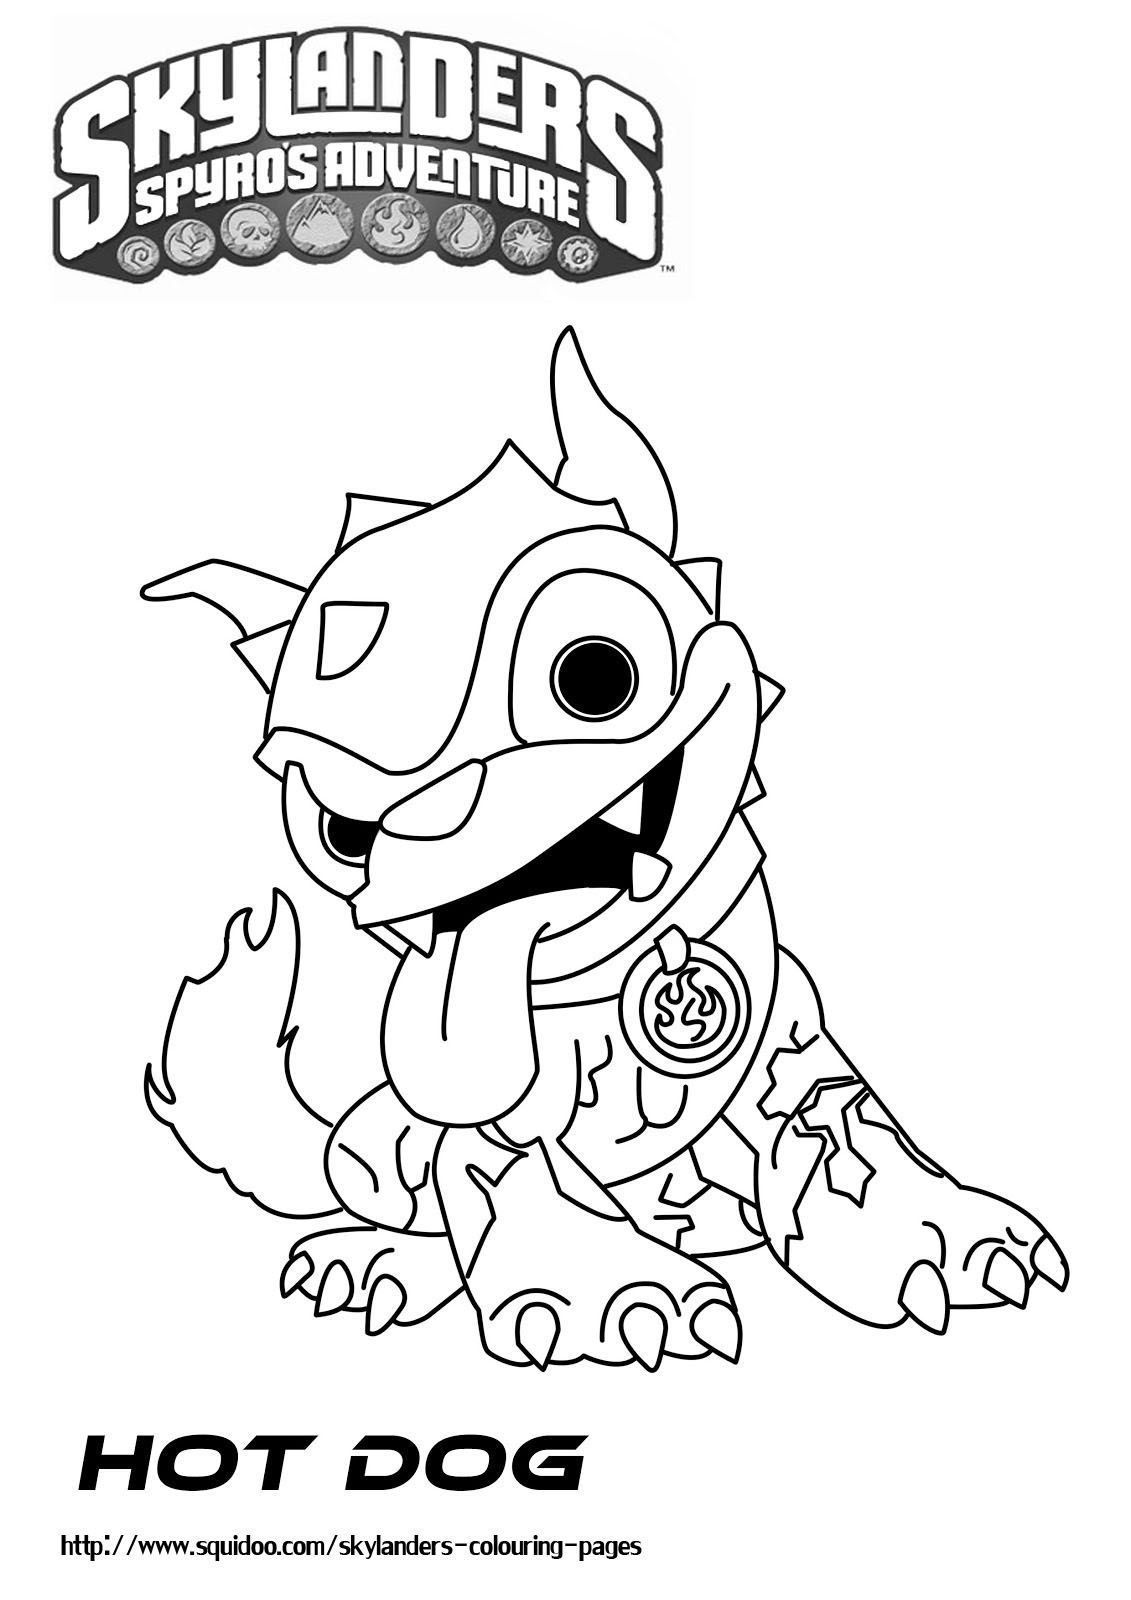 image regarding Skylanders Printable Coloring Pages named Skylanders Printable Coloring Webpages Skylanders Bed room